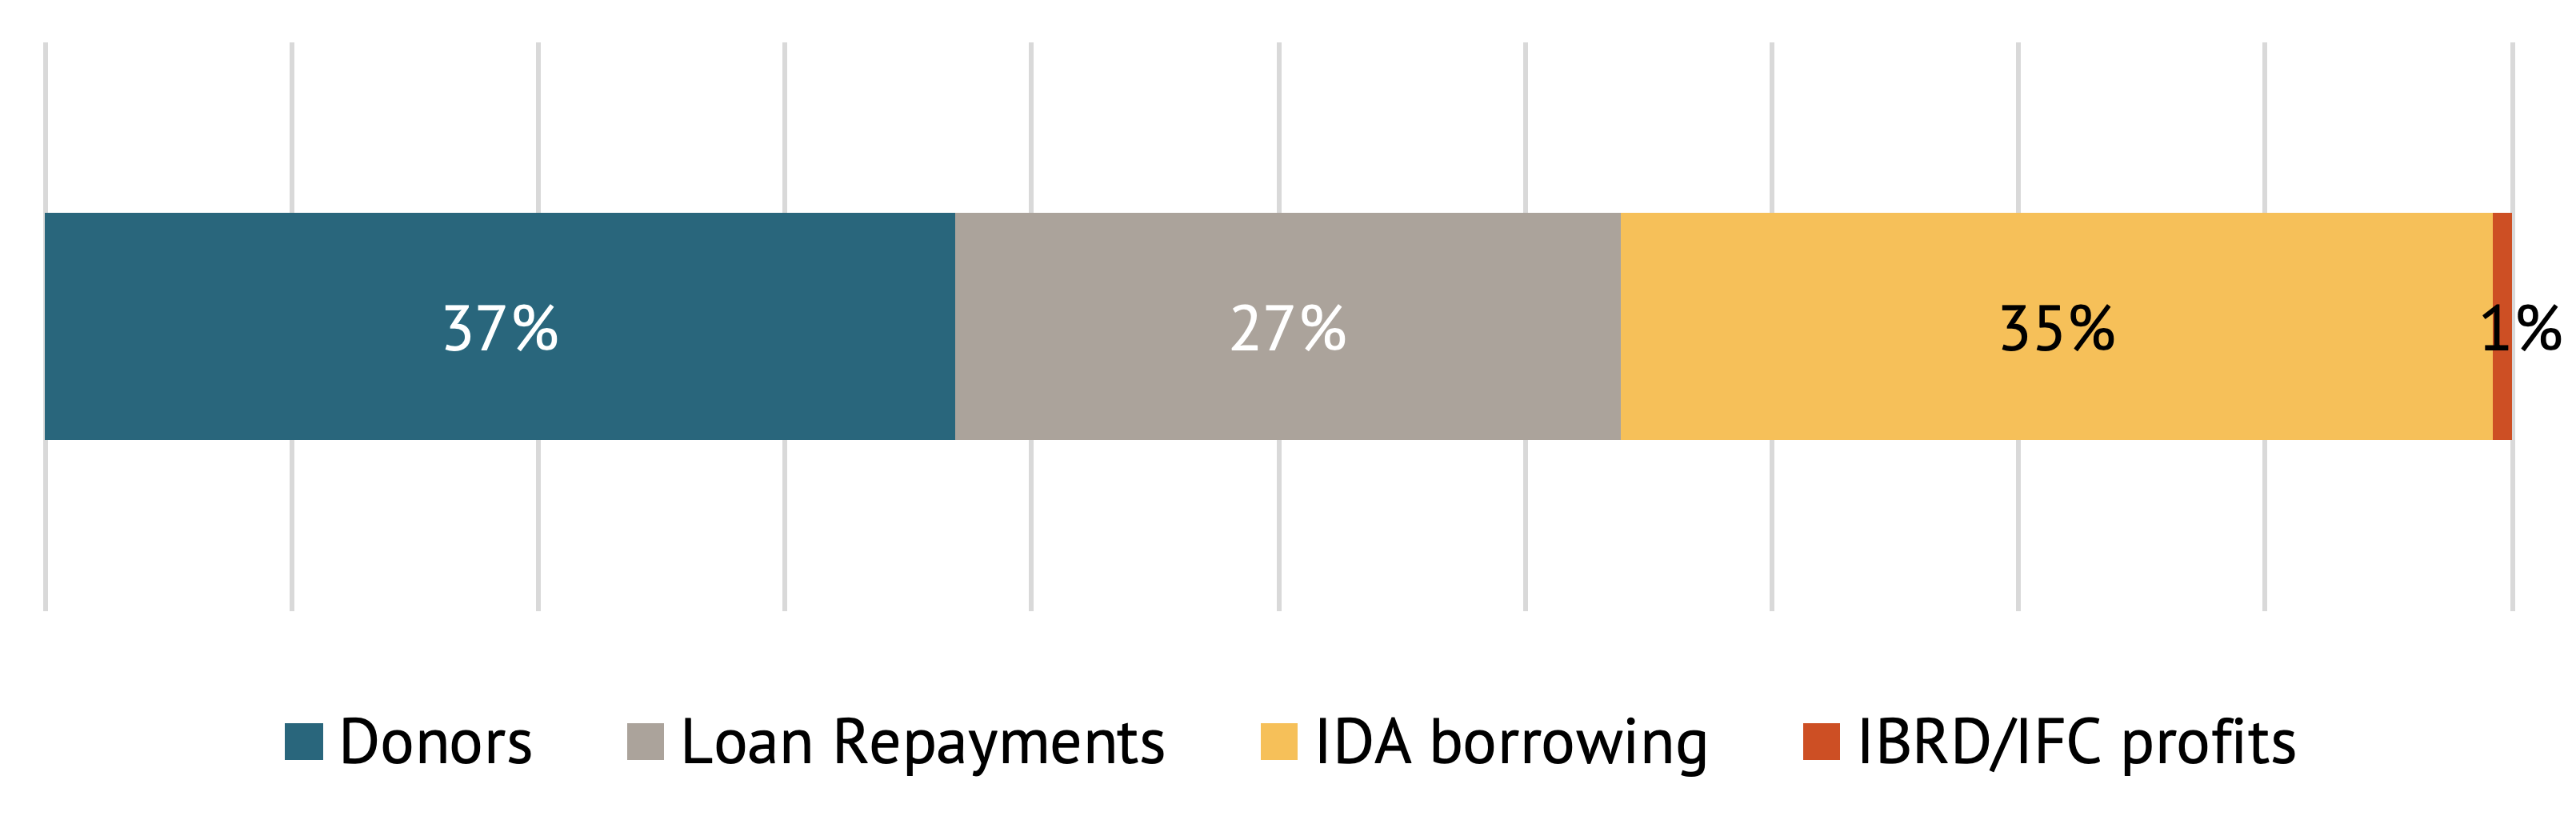 A figure showing that IDA gets its money from donors, loan repayments, IDA borrowing, and IBRD/IFC profits